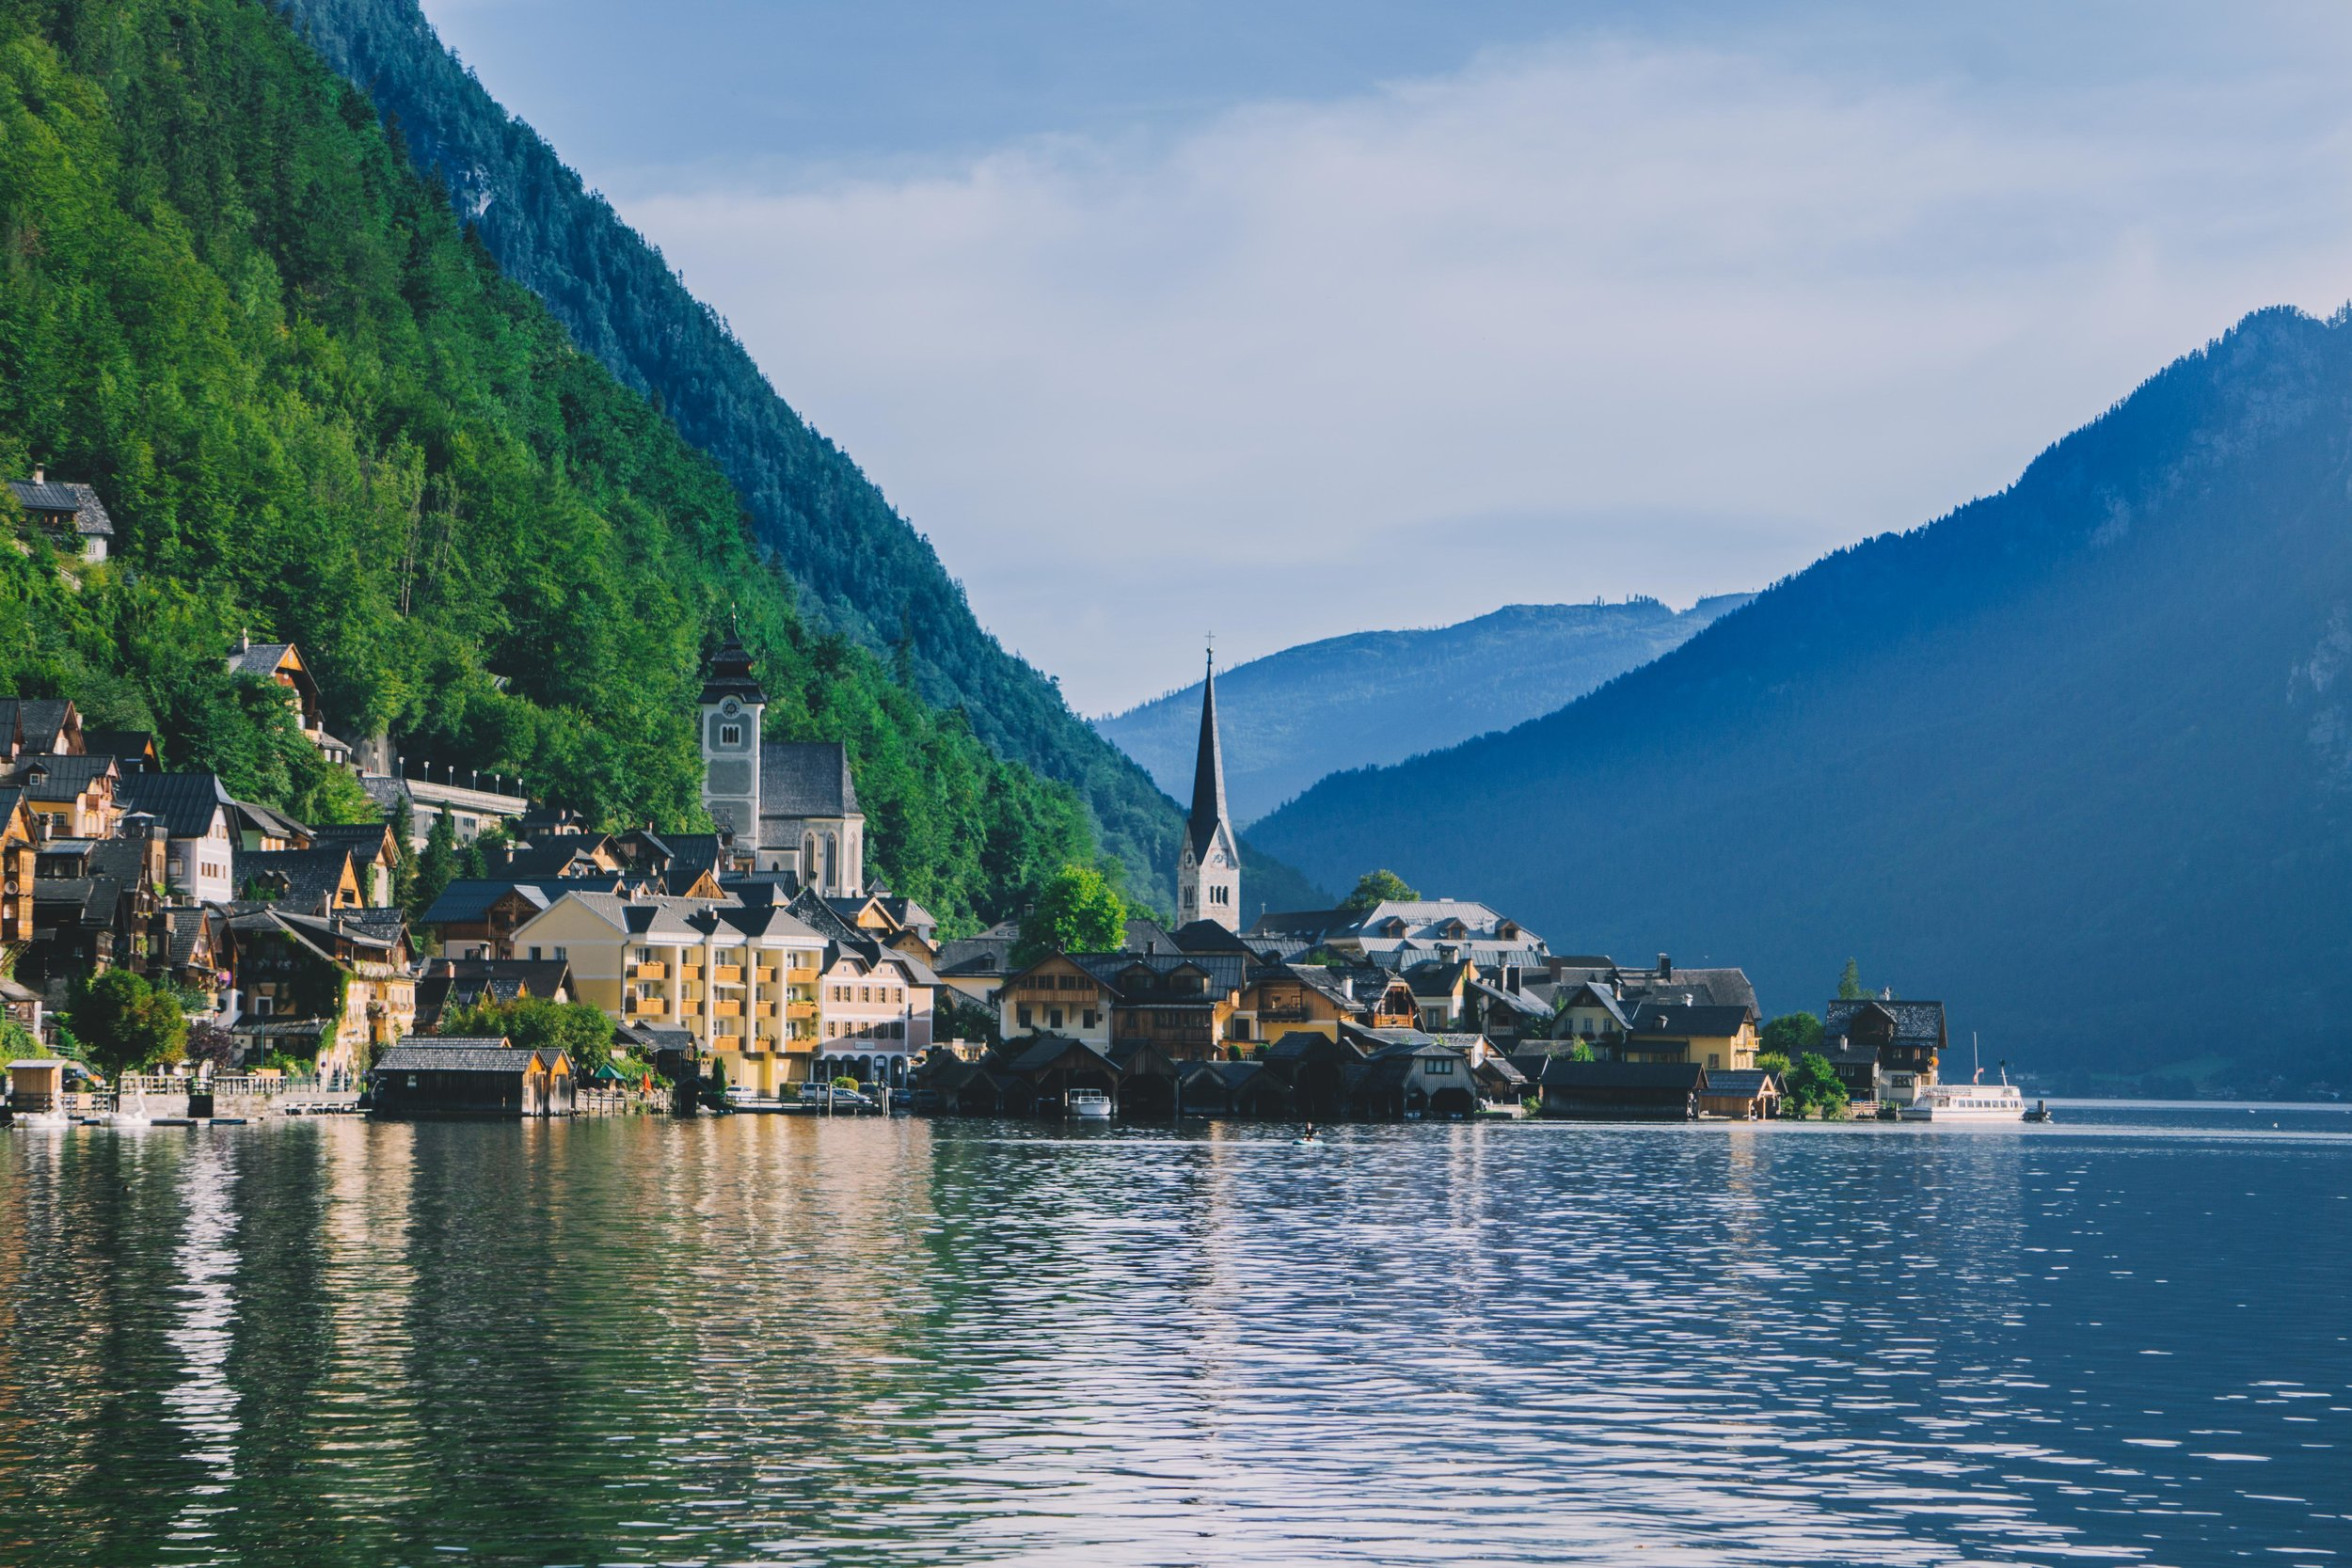 Hallstatt Austria, lake and village view - Have Some Color